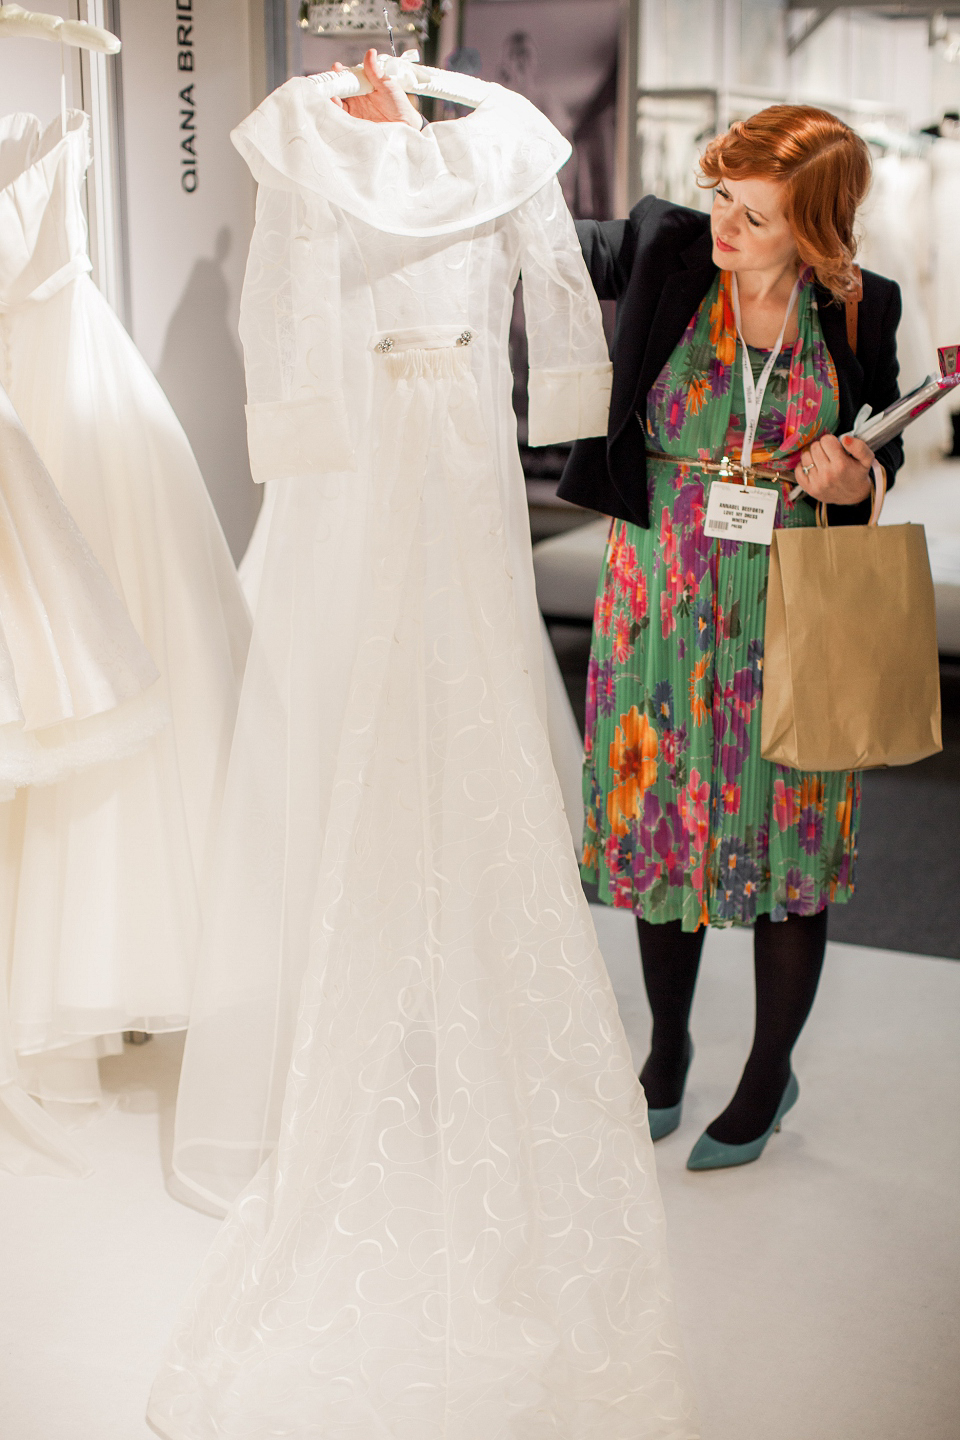 Qiana Bride at The White Gallery, London, April 2014